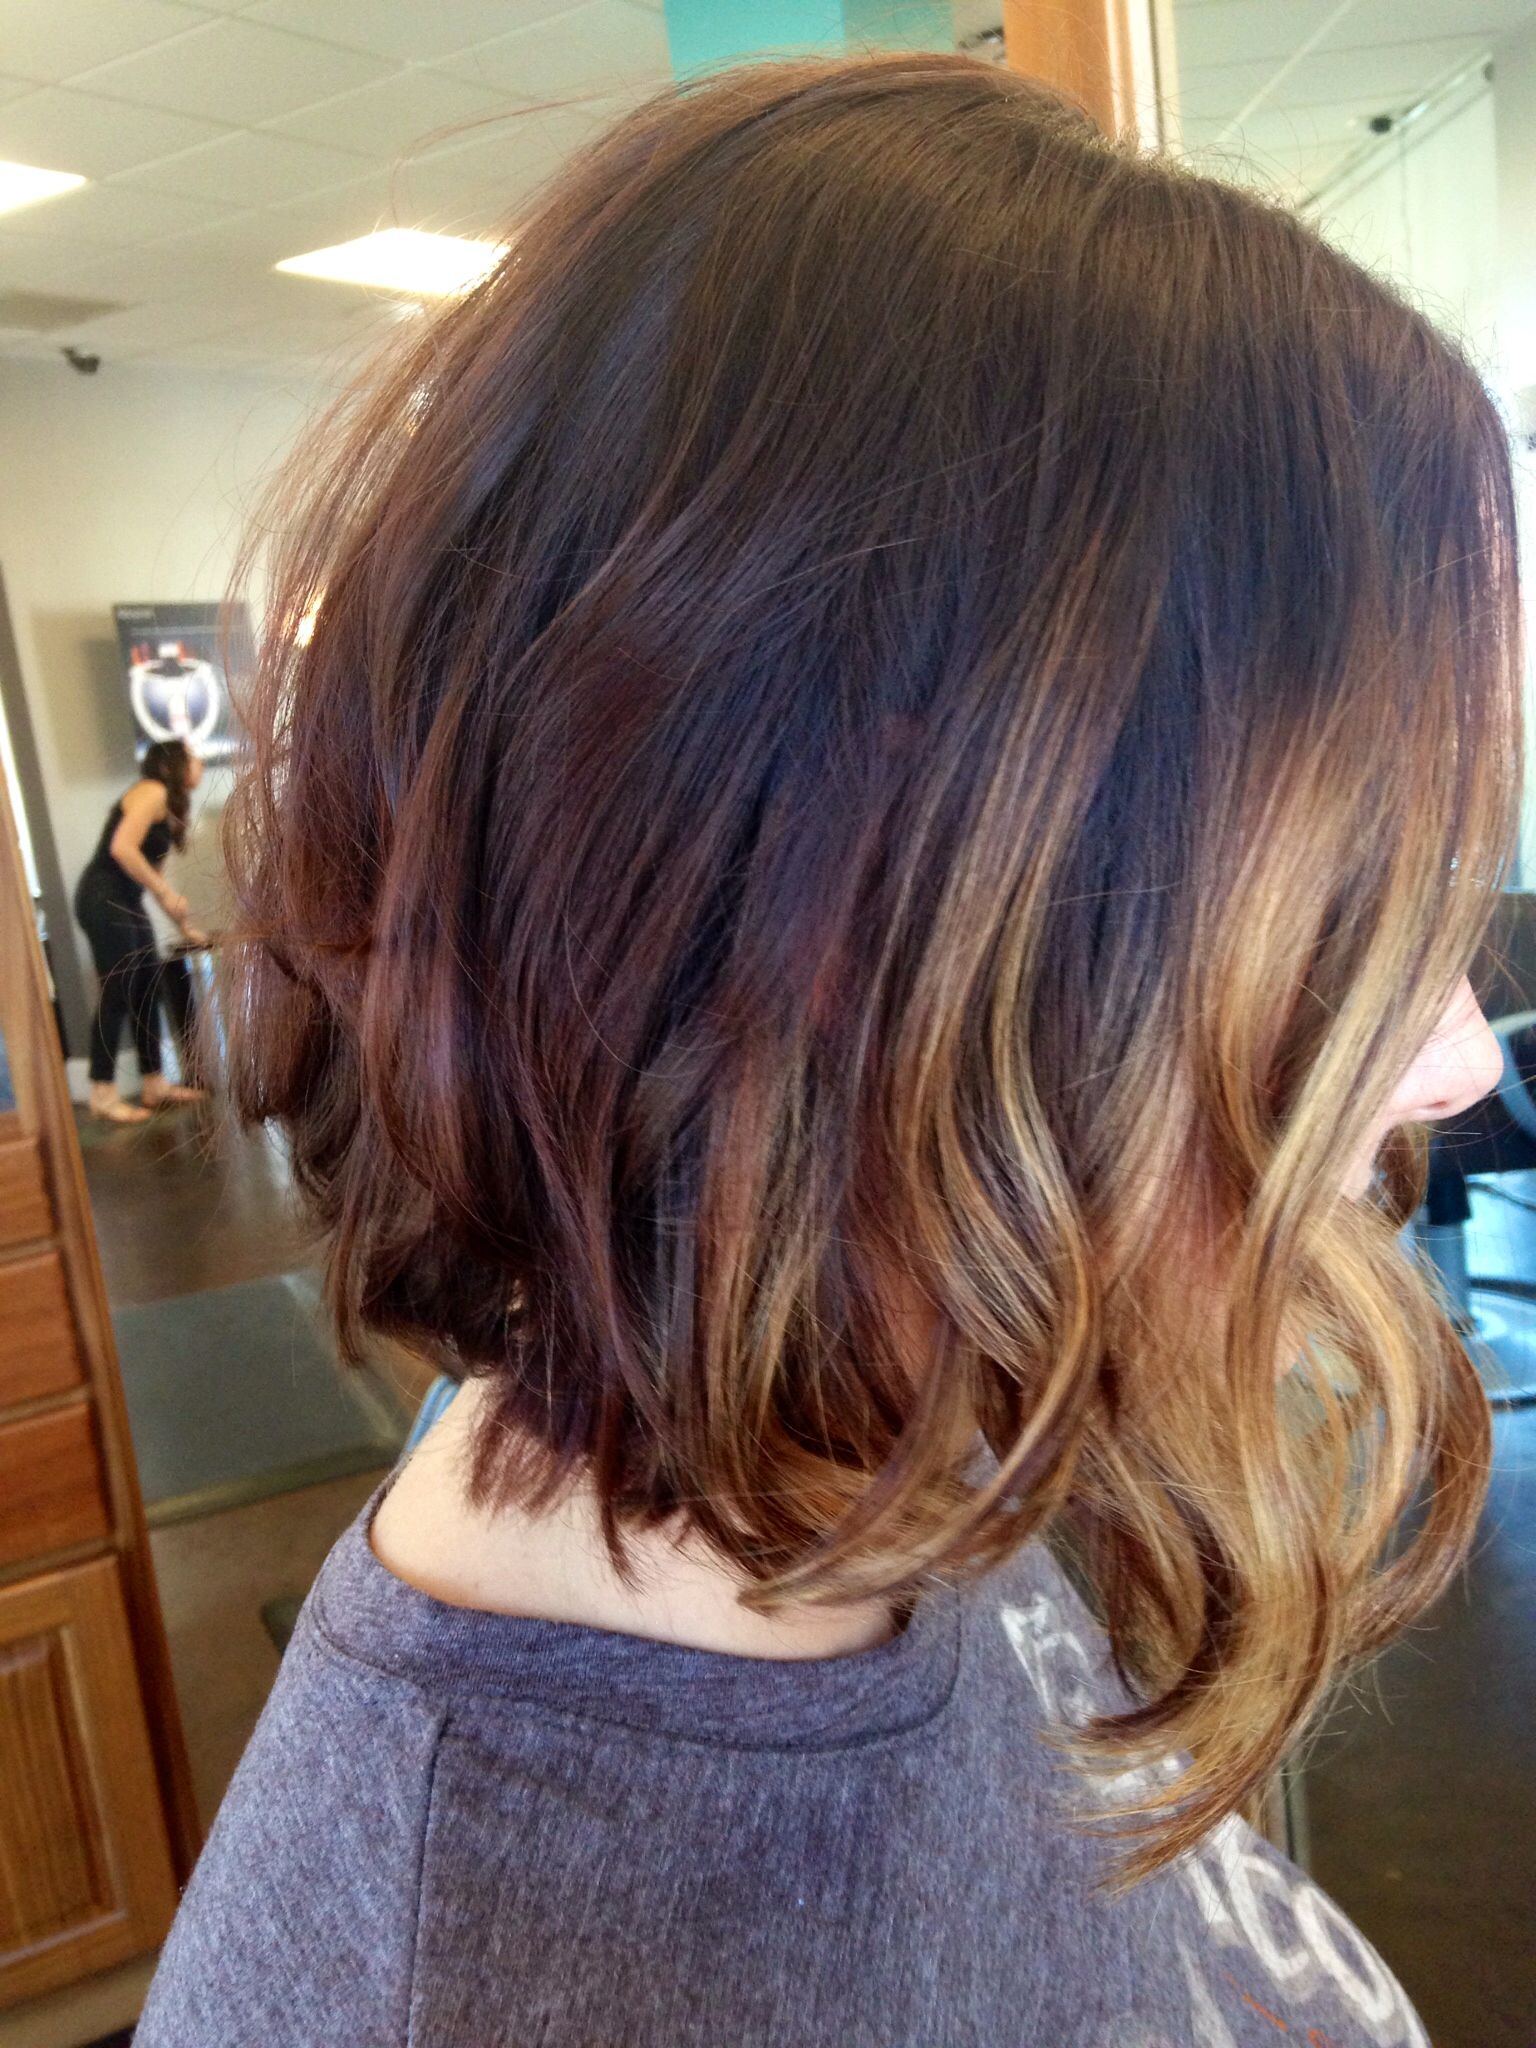 caramel balayage highlights hair skin and makeup pinterest caramel balayage highlights. Black Bedroom Furniture Sets. Home Design Ideas